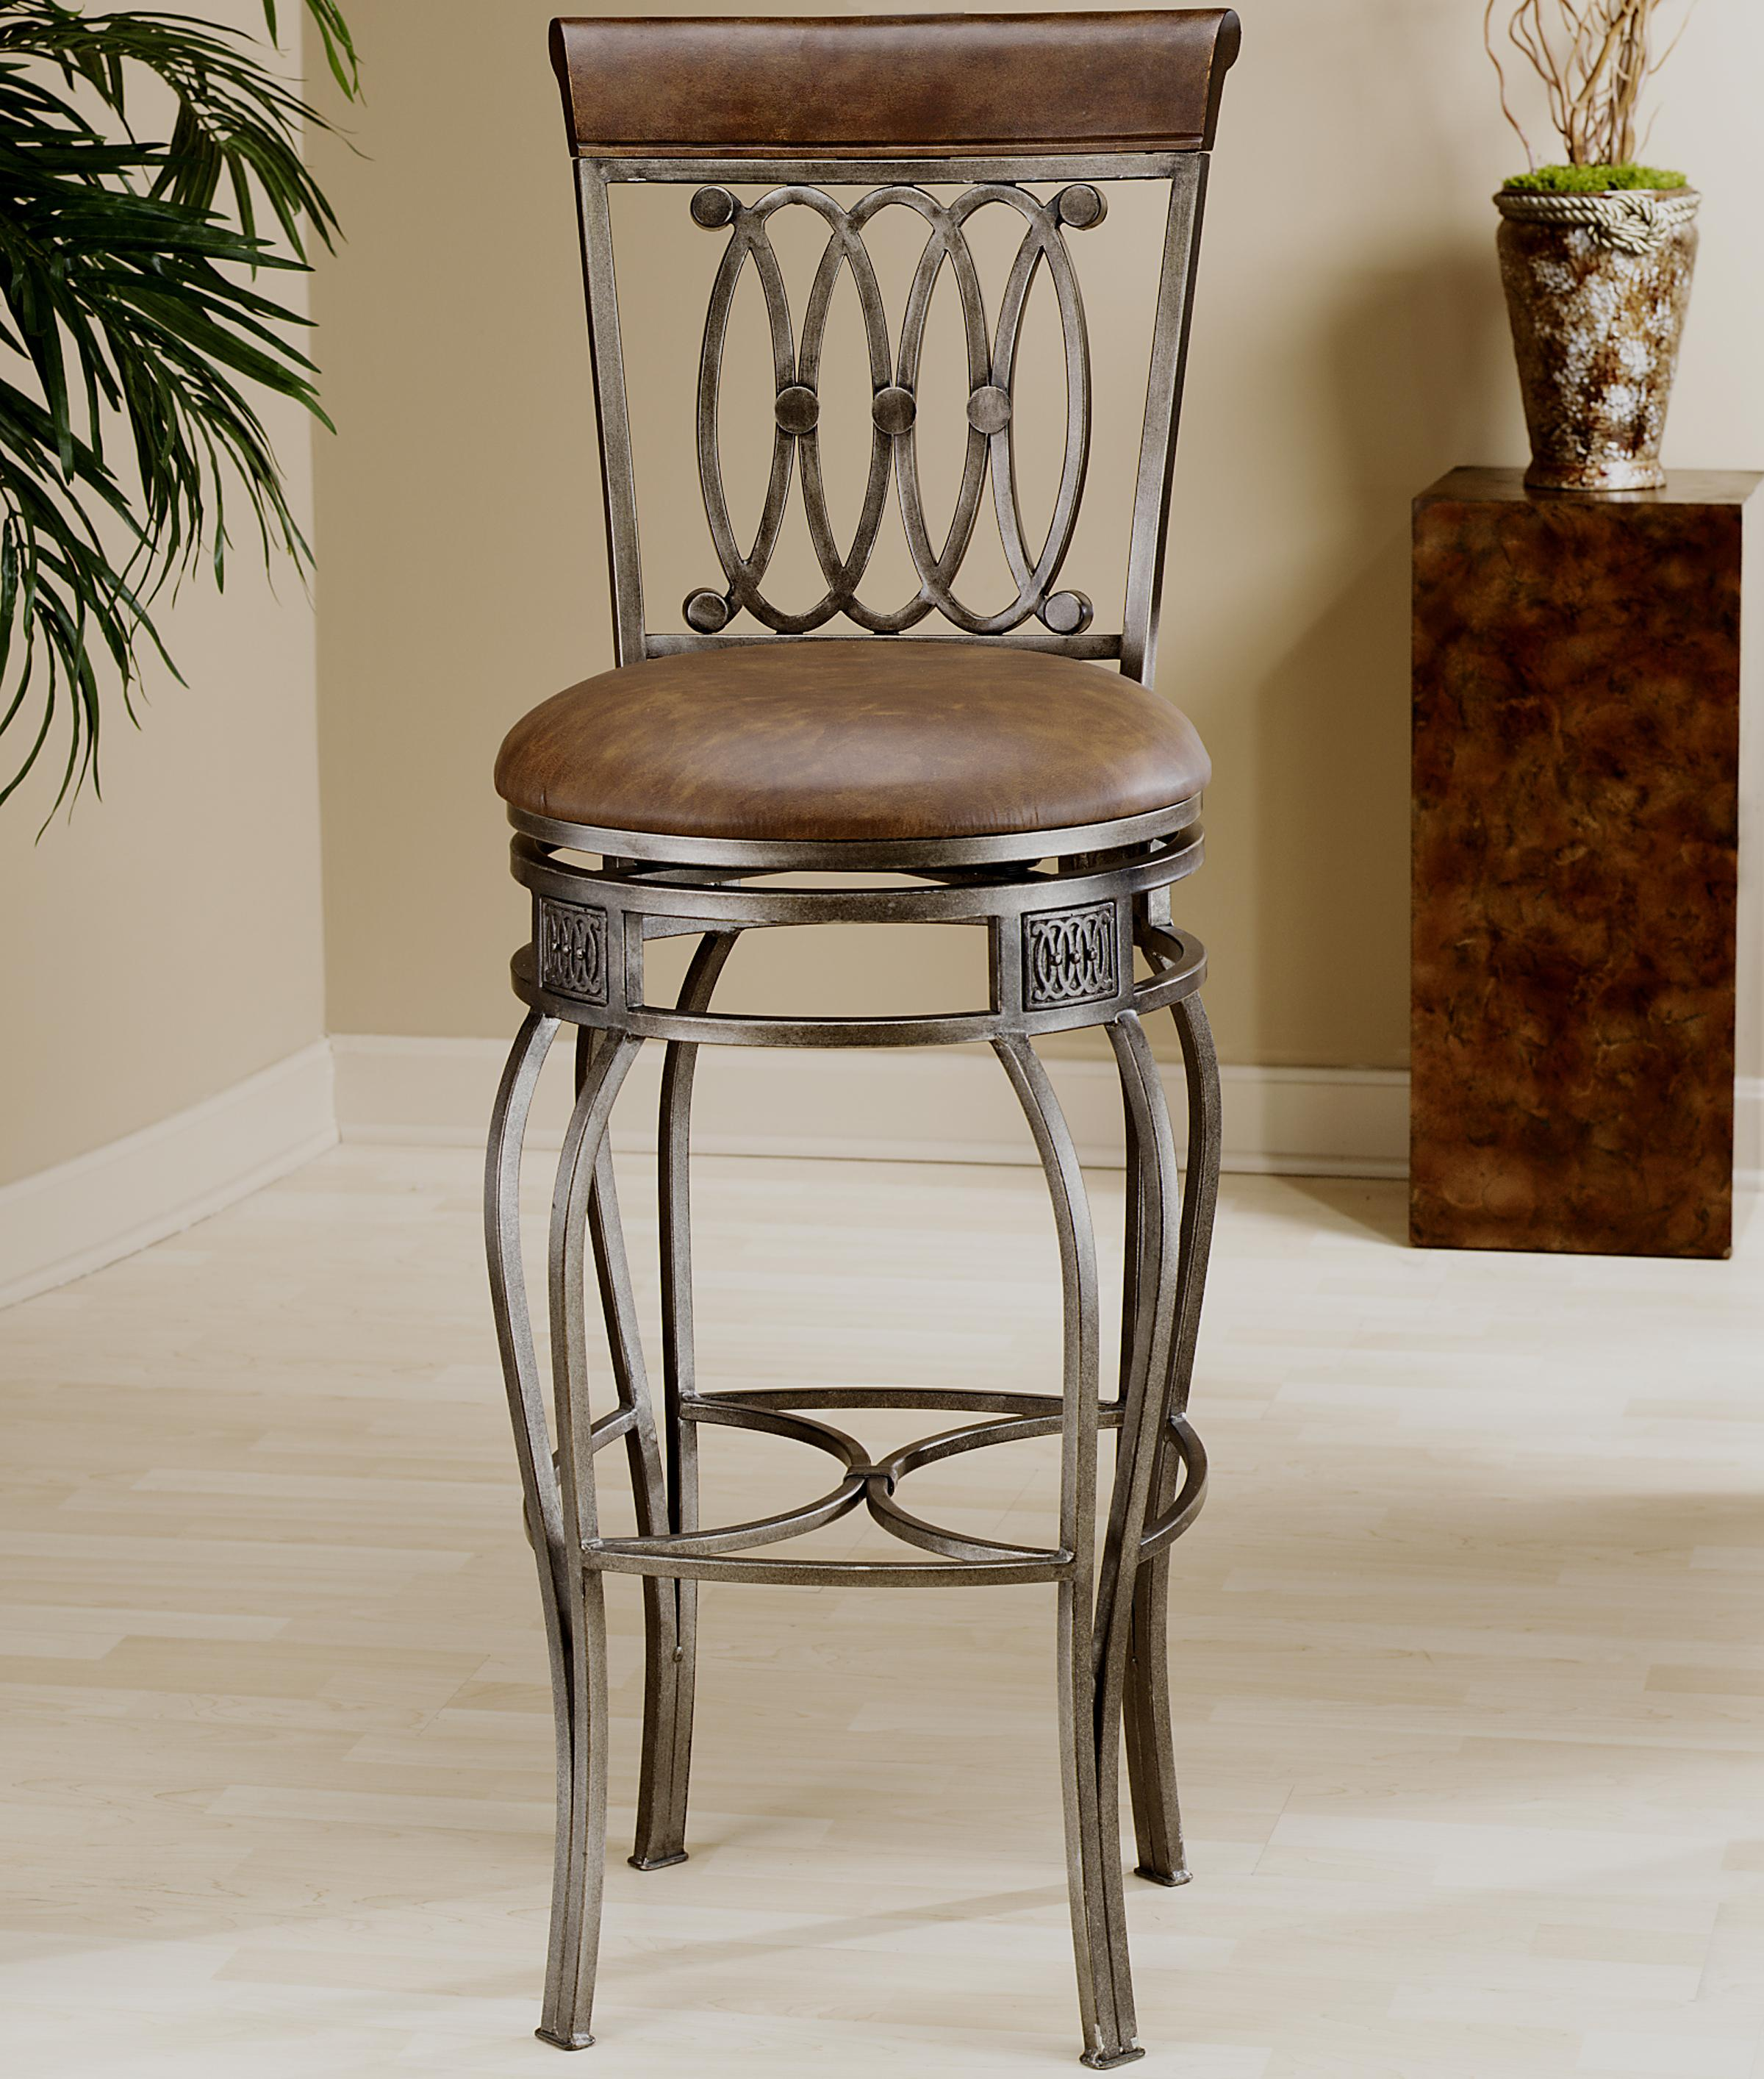 "Hillsdale Metal Stools 28"" Counter Height Montello Swivel Stool - Item Number: 41544"